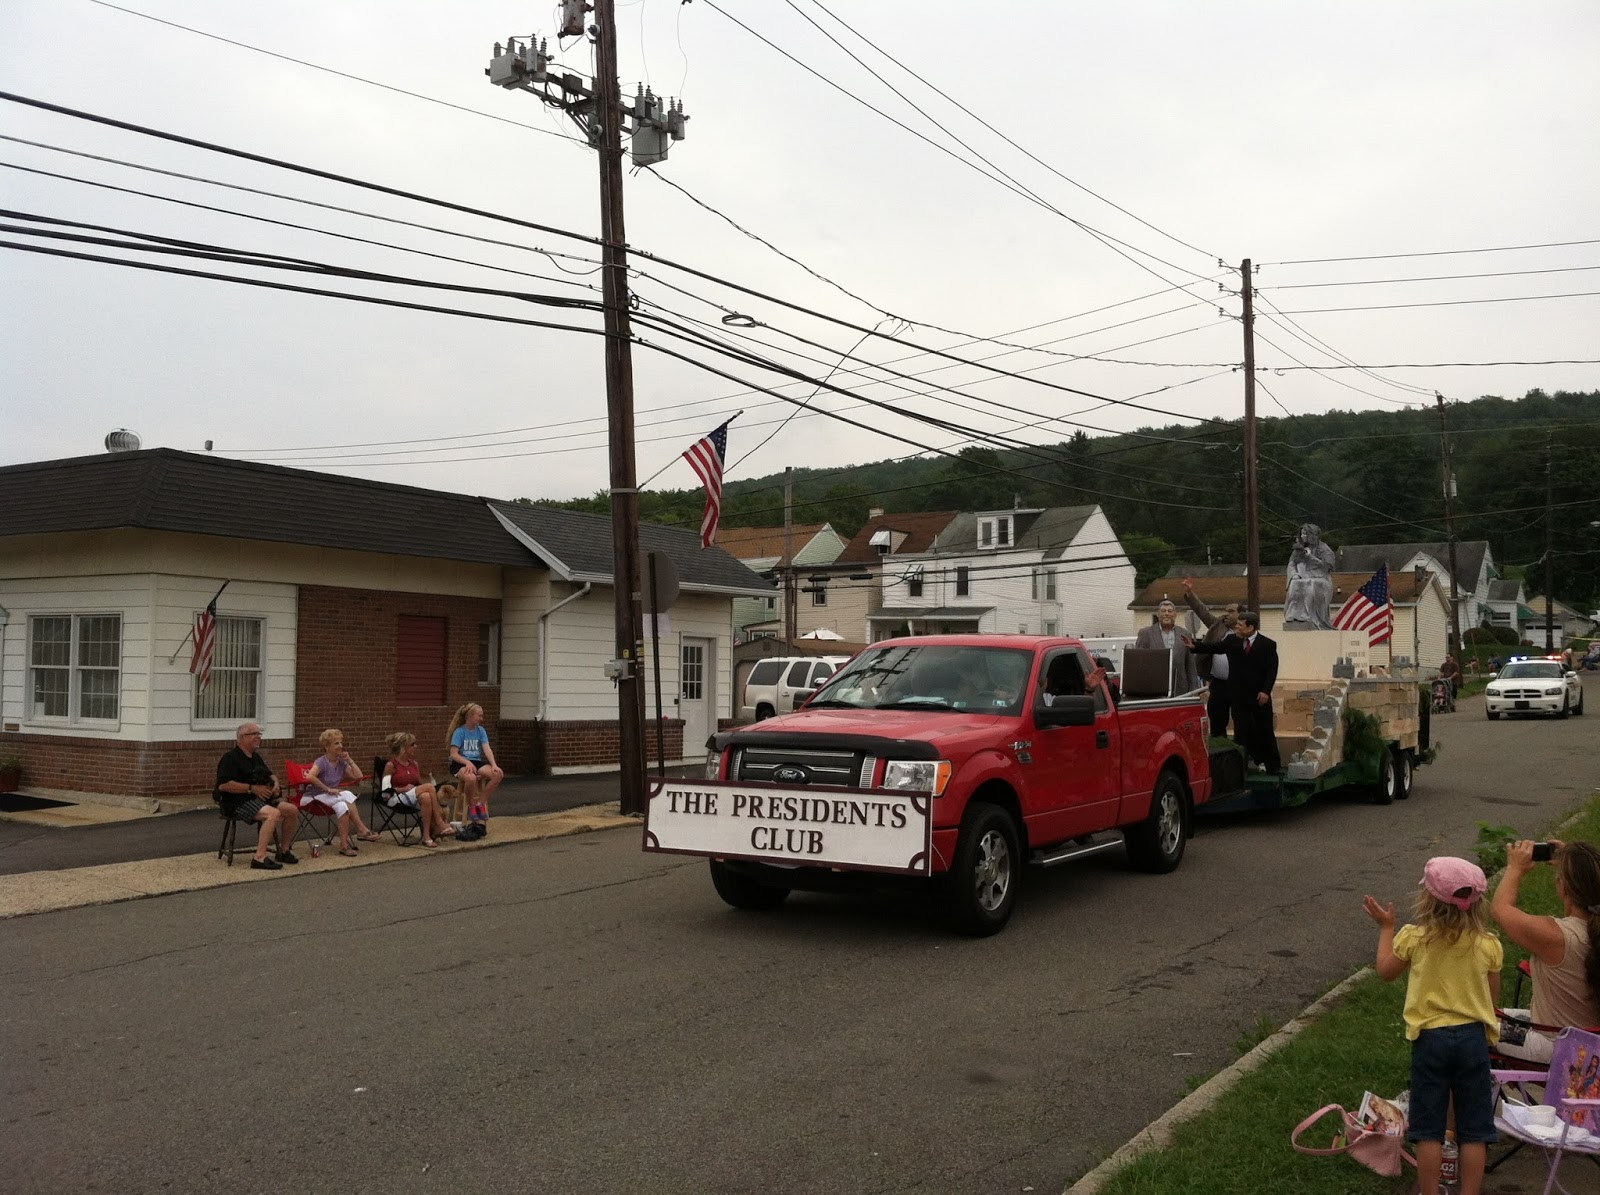 Pictures of the ABA Parade 2013, Ashland, PA (29 Pics)